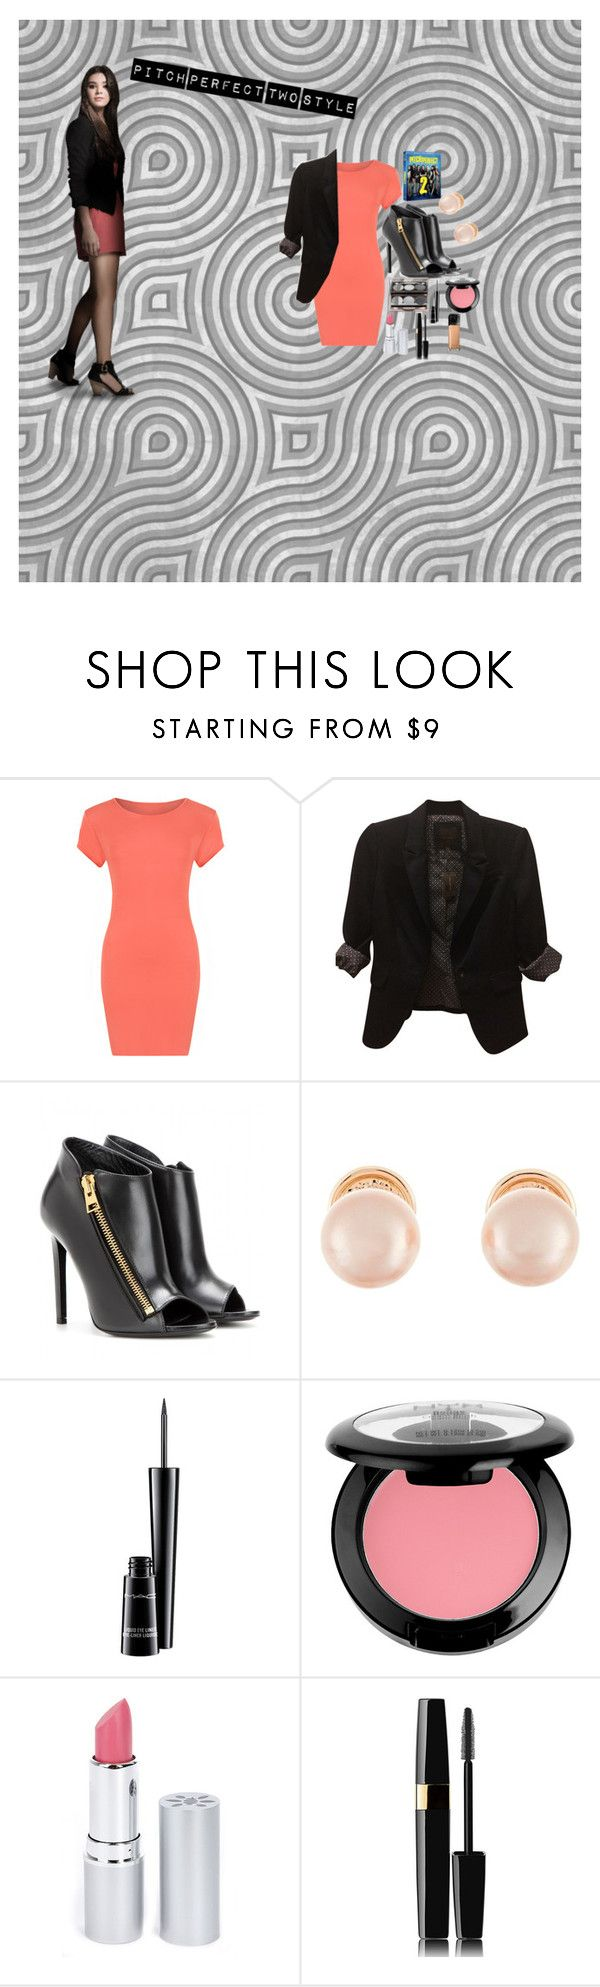 """""""pitch perfect two emily junk"""" by pandaprincess19 ❤ liked on Polyvore featuring moda, WearAll, The Limited, Tom Ford, Kenneth Jay Lane, MAC Cosmetics, NYX, HoneyBee Gardens, Maybelline i pitchperfect2"""